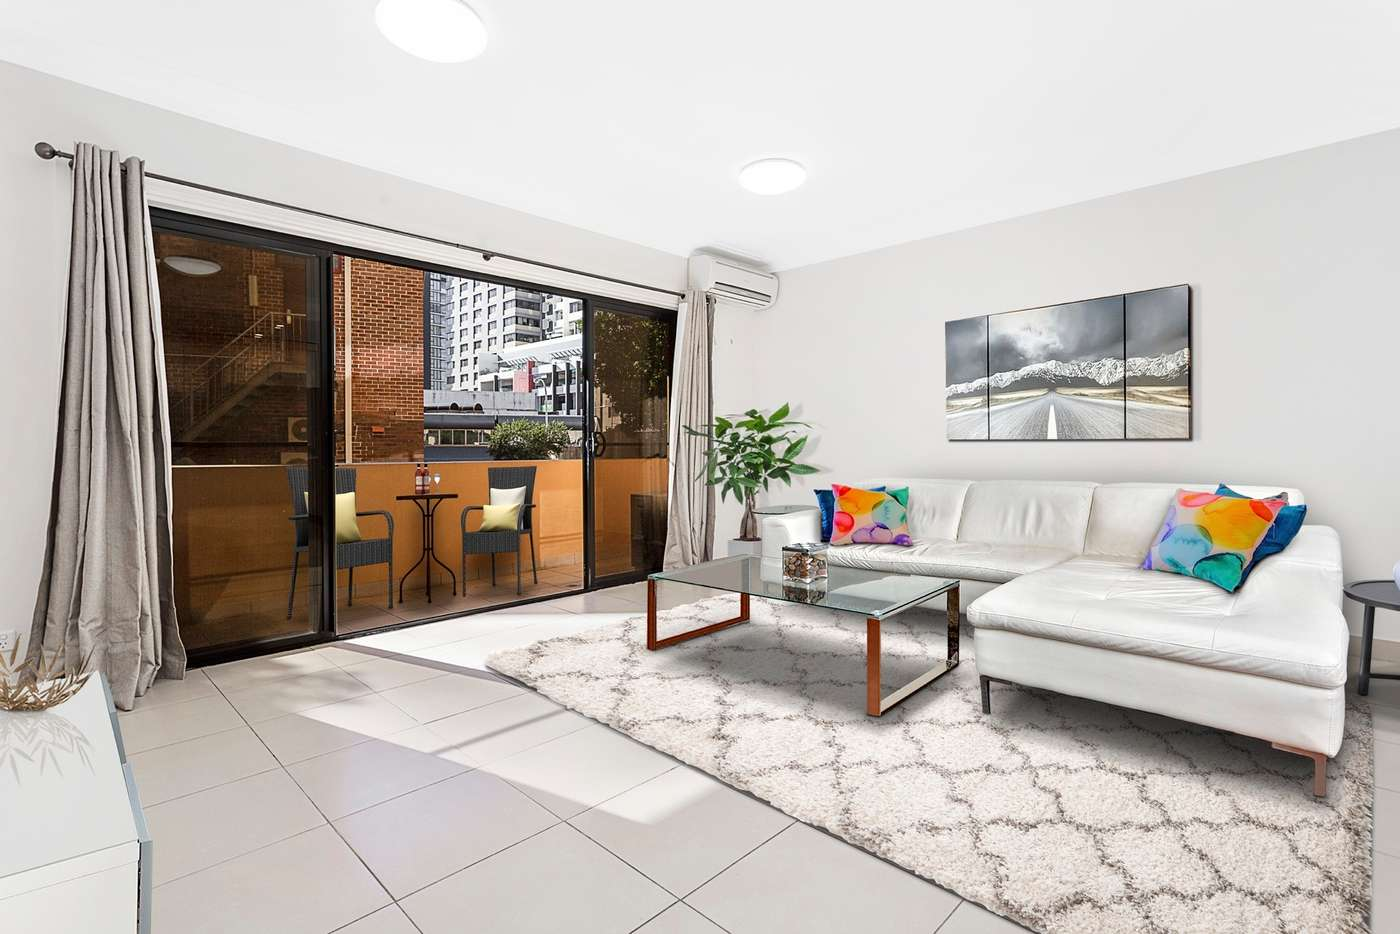 Main view of Homely apartment listing, 10/105 Church Street, Parramatta NSW 2150